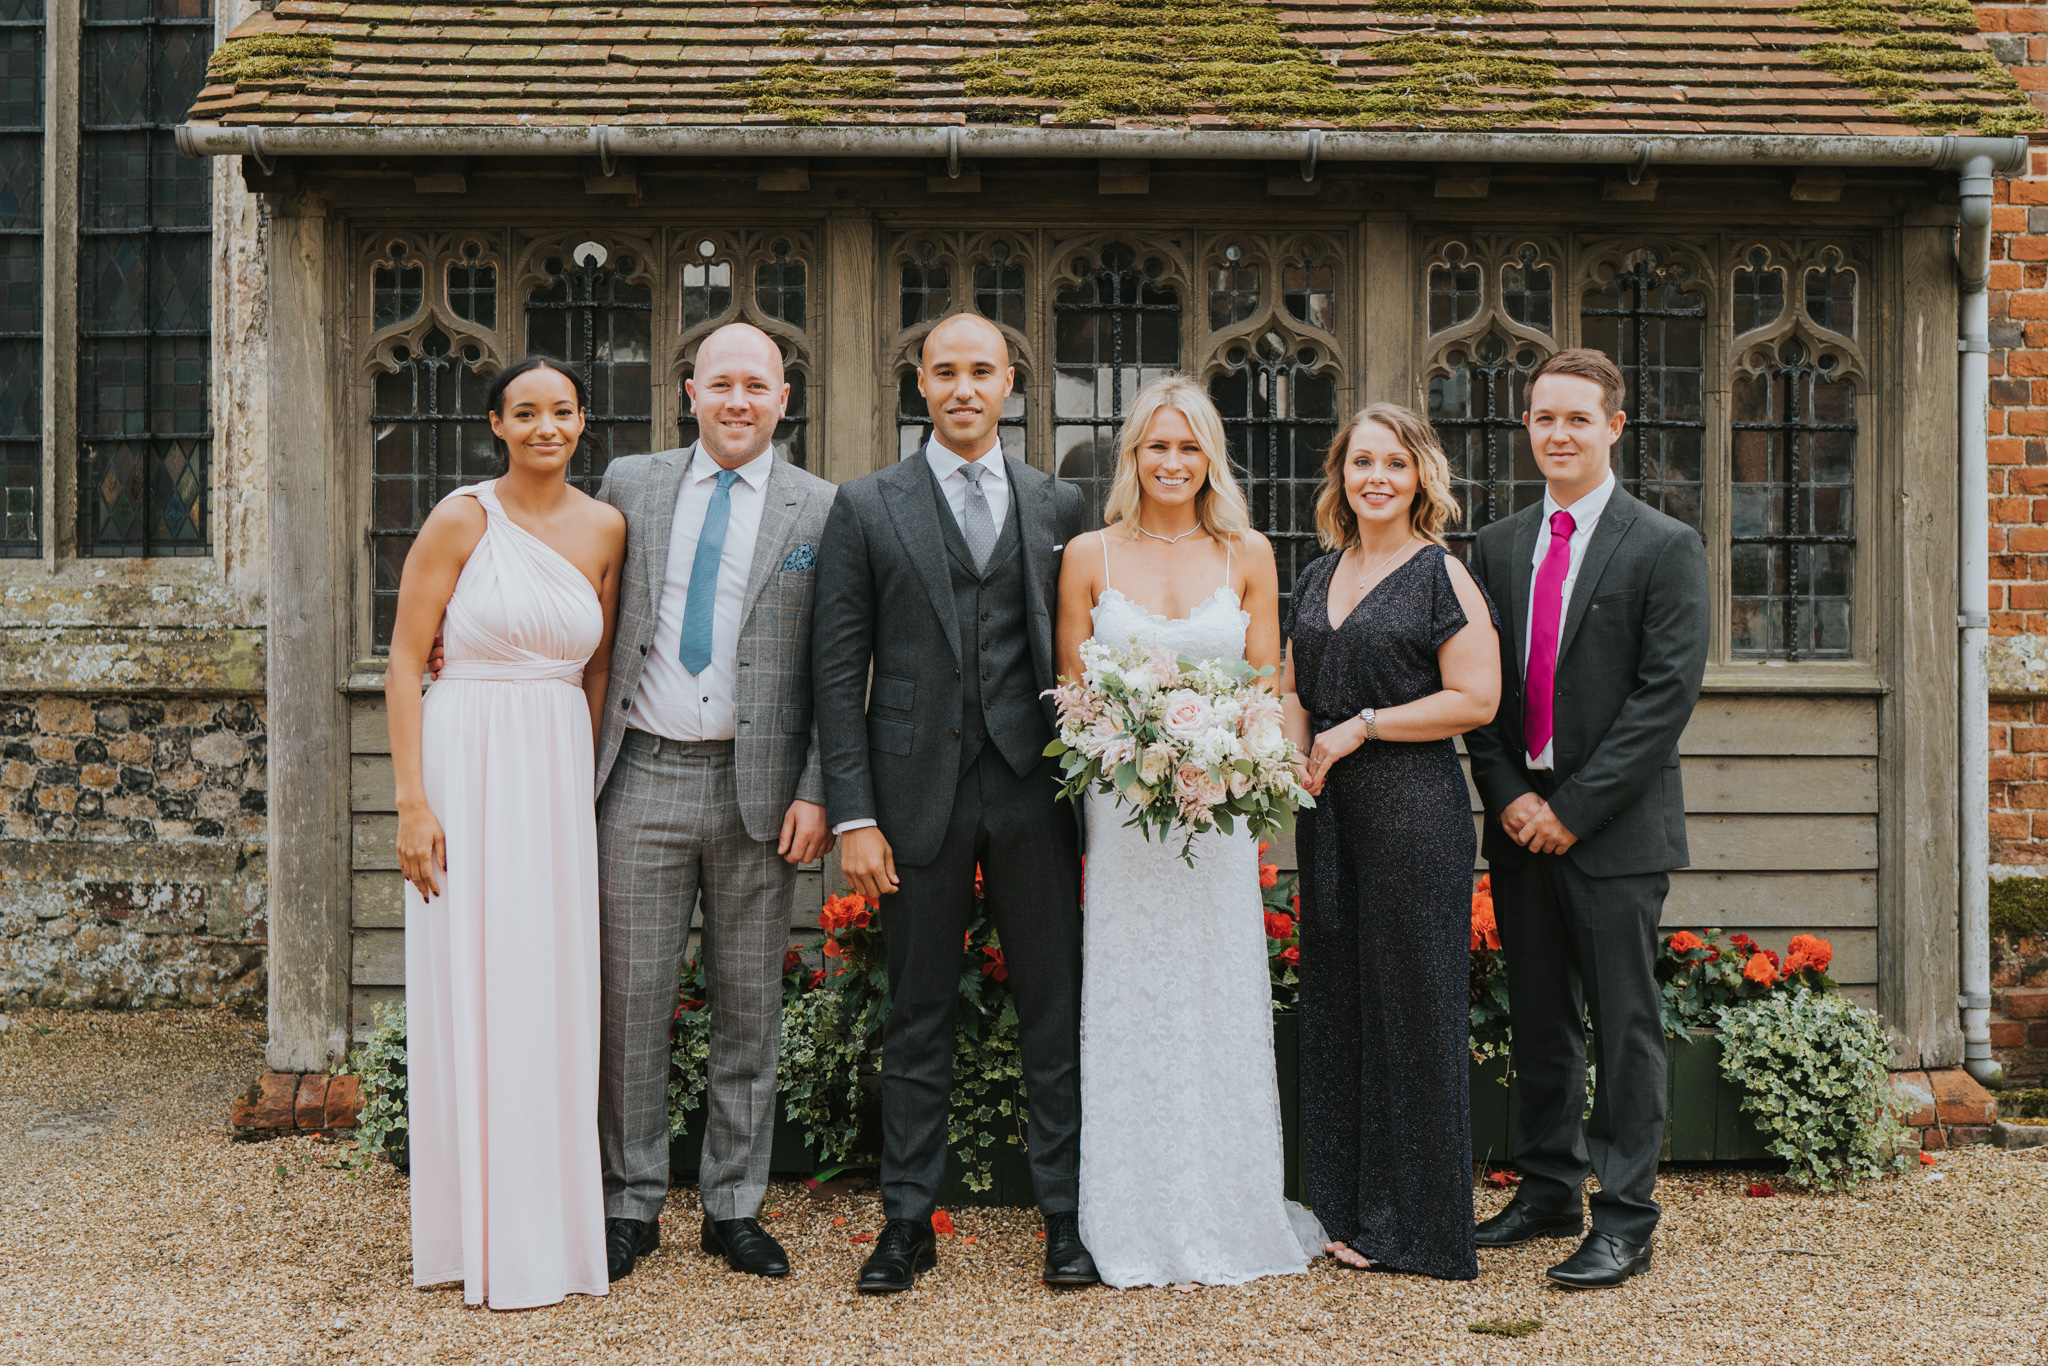 intimate-english-church-wedding-sarah-alex-colchester-essex-grace-elizabeth-colchester-essex-alternative-wedding-lifestyle-photographer-essex-suffolk-norfolk-devon (72 of 92).jpg